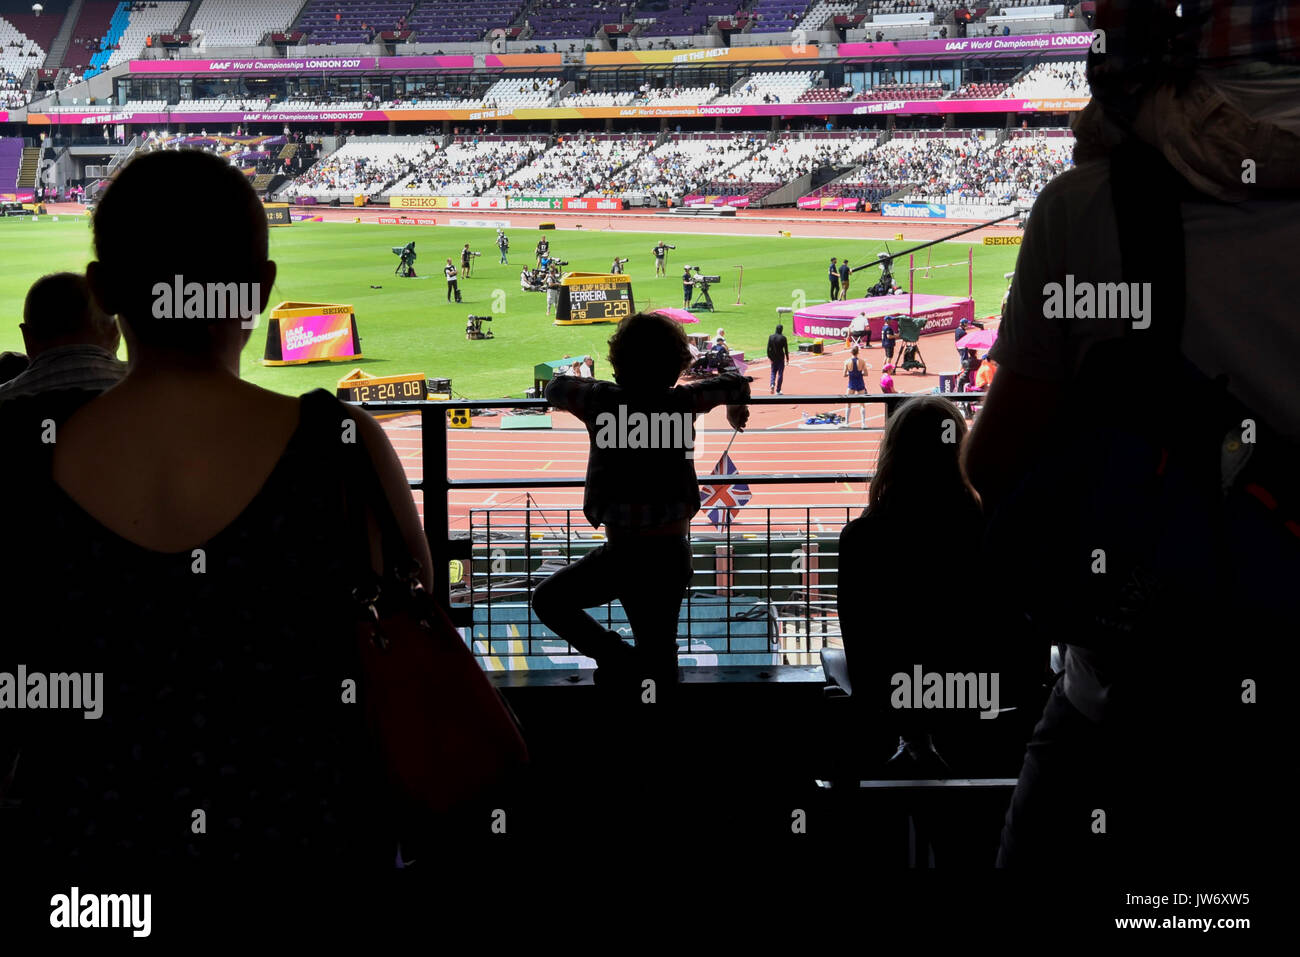 London, Großbritannien. 11. August 2017. Ein junger Fan ist in Silhouette gesehen gerade die Hochsprung Qualifikation an der London Stadion, am Tag acht Der IAAF World Championships in London 2017. Credit: Stephen Chung/Alamy leben Nachrichten Stockbild